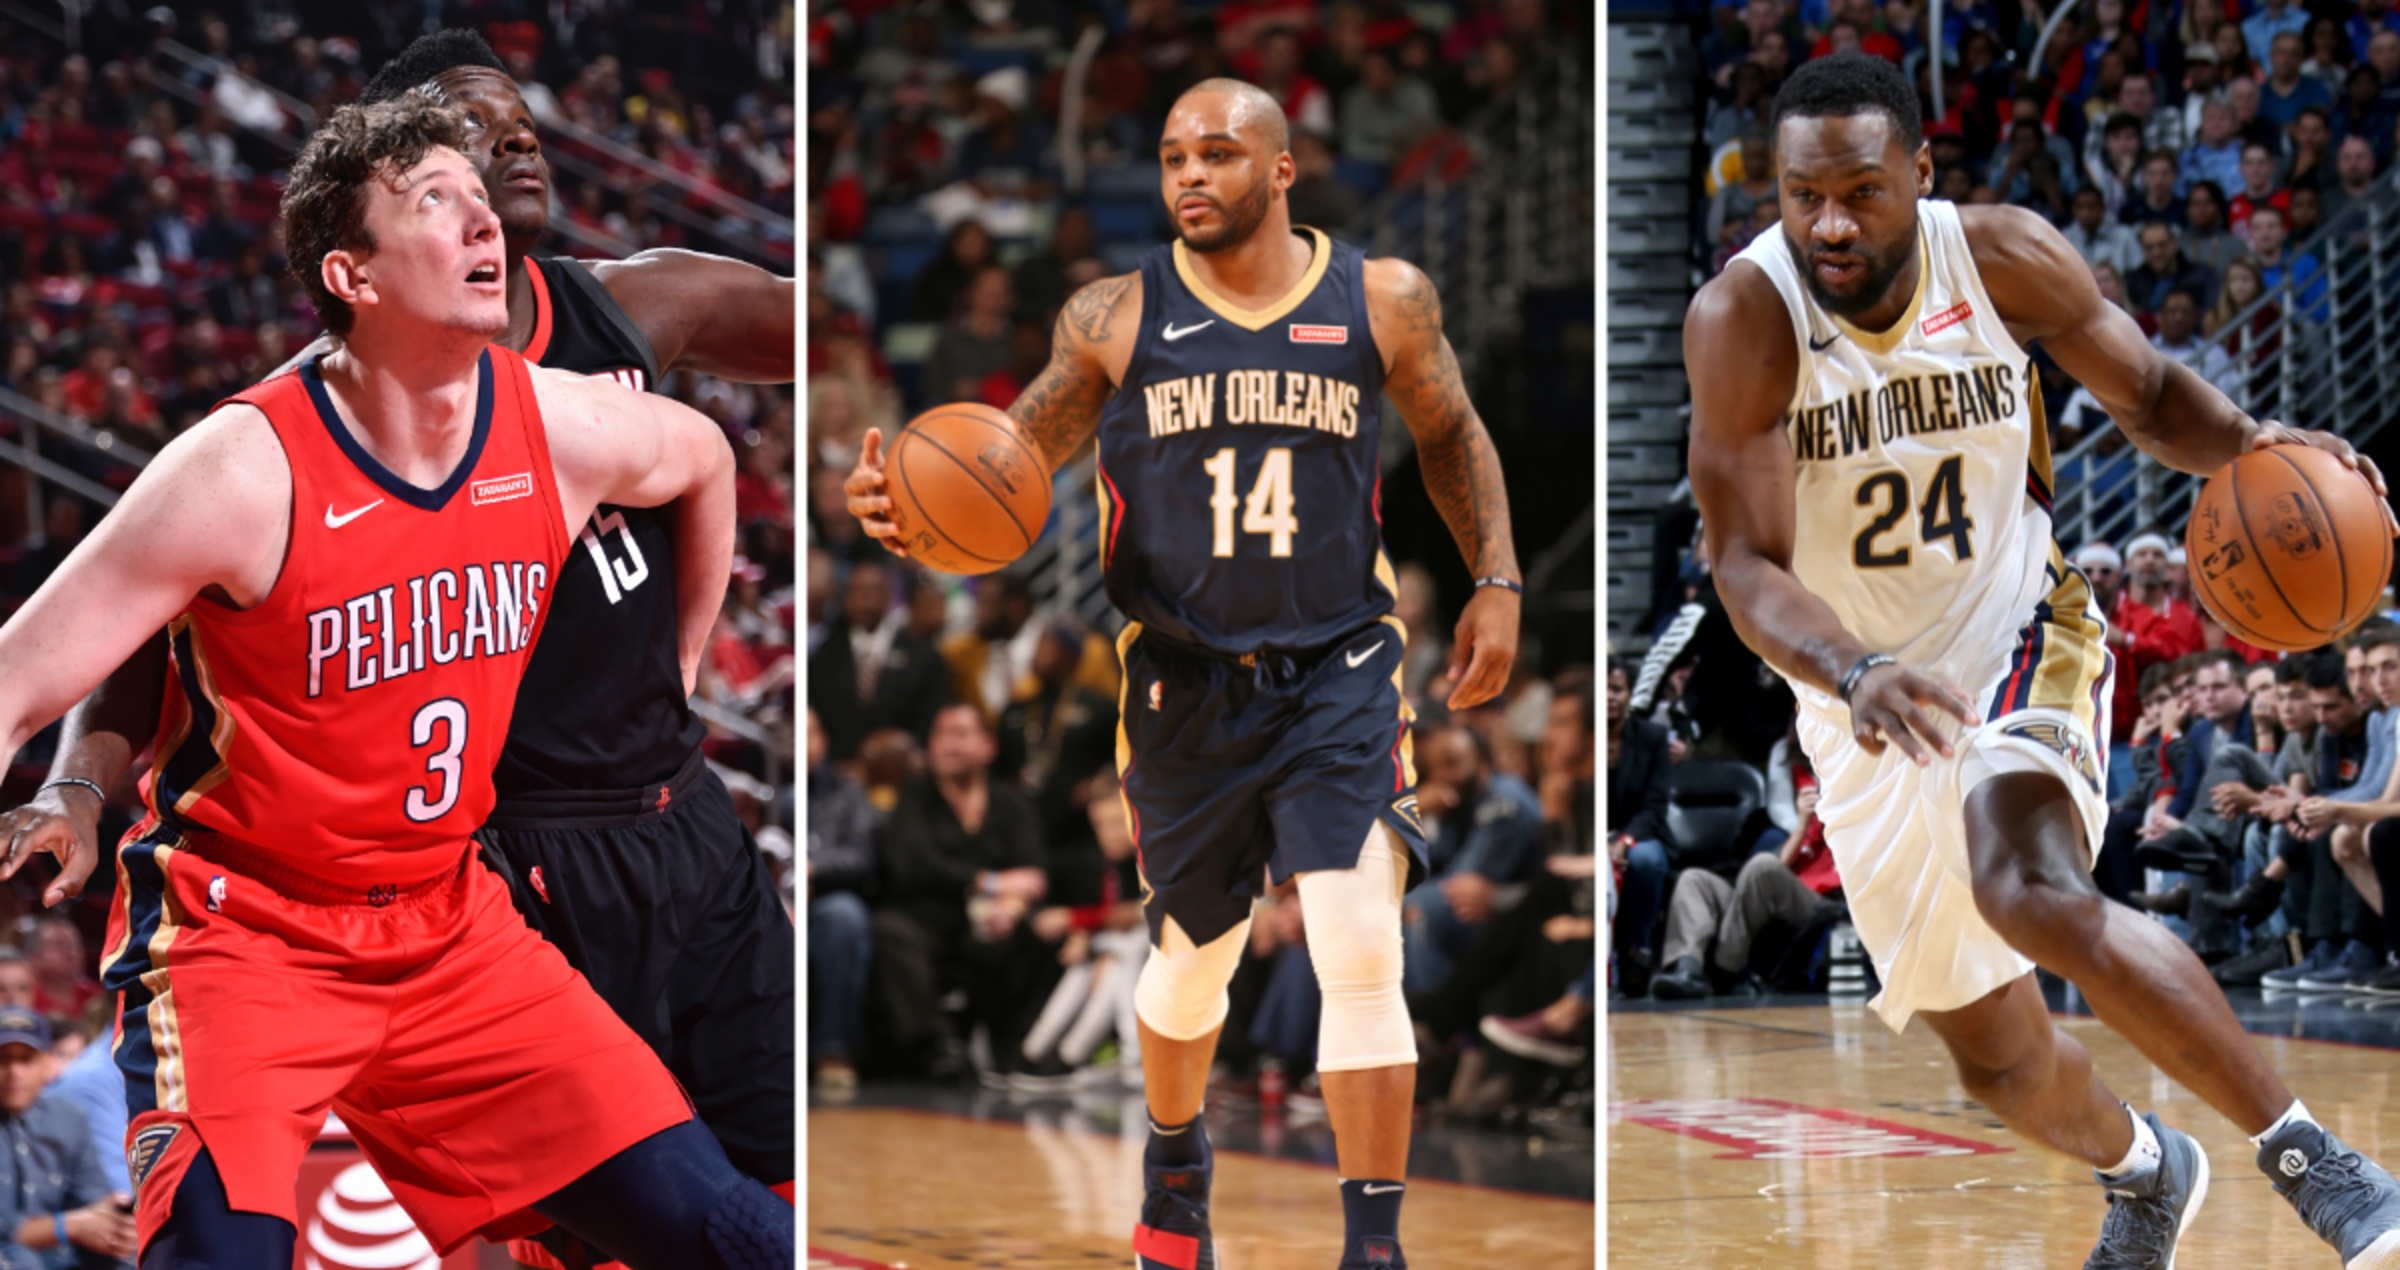 Bulls acquire Asik, Nelson, Allen, and first-round pick from New Orleans